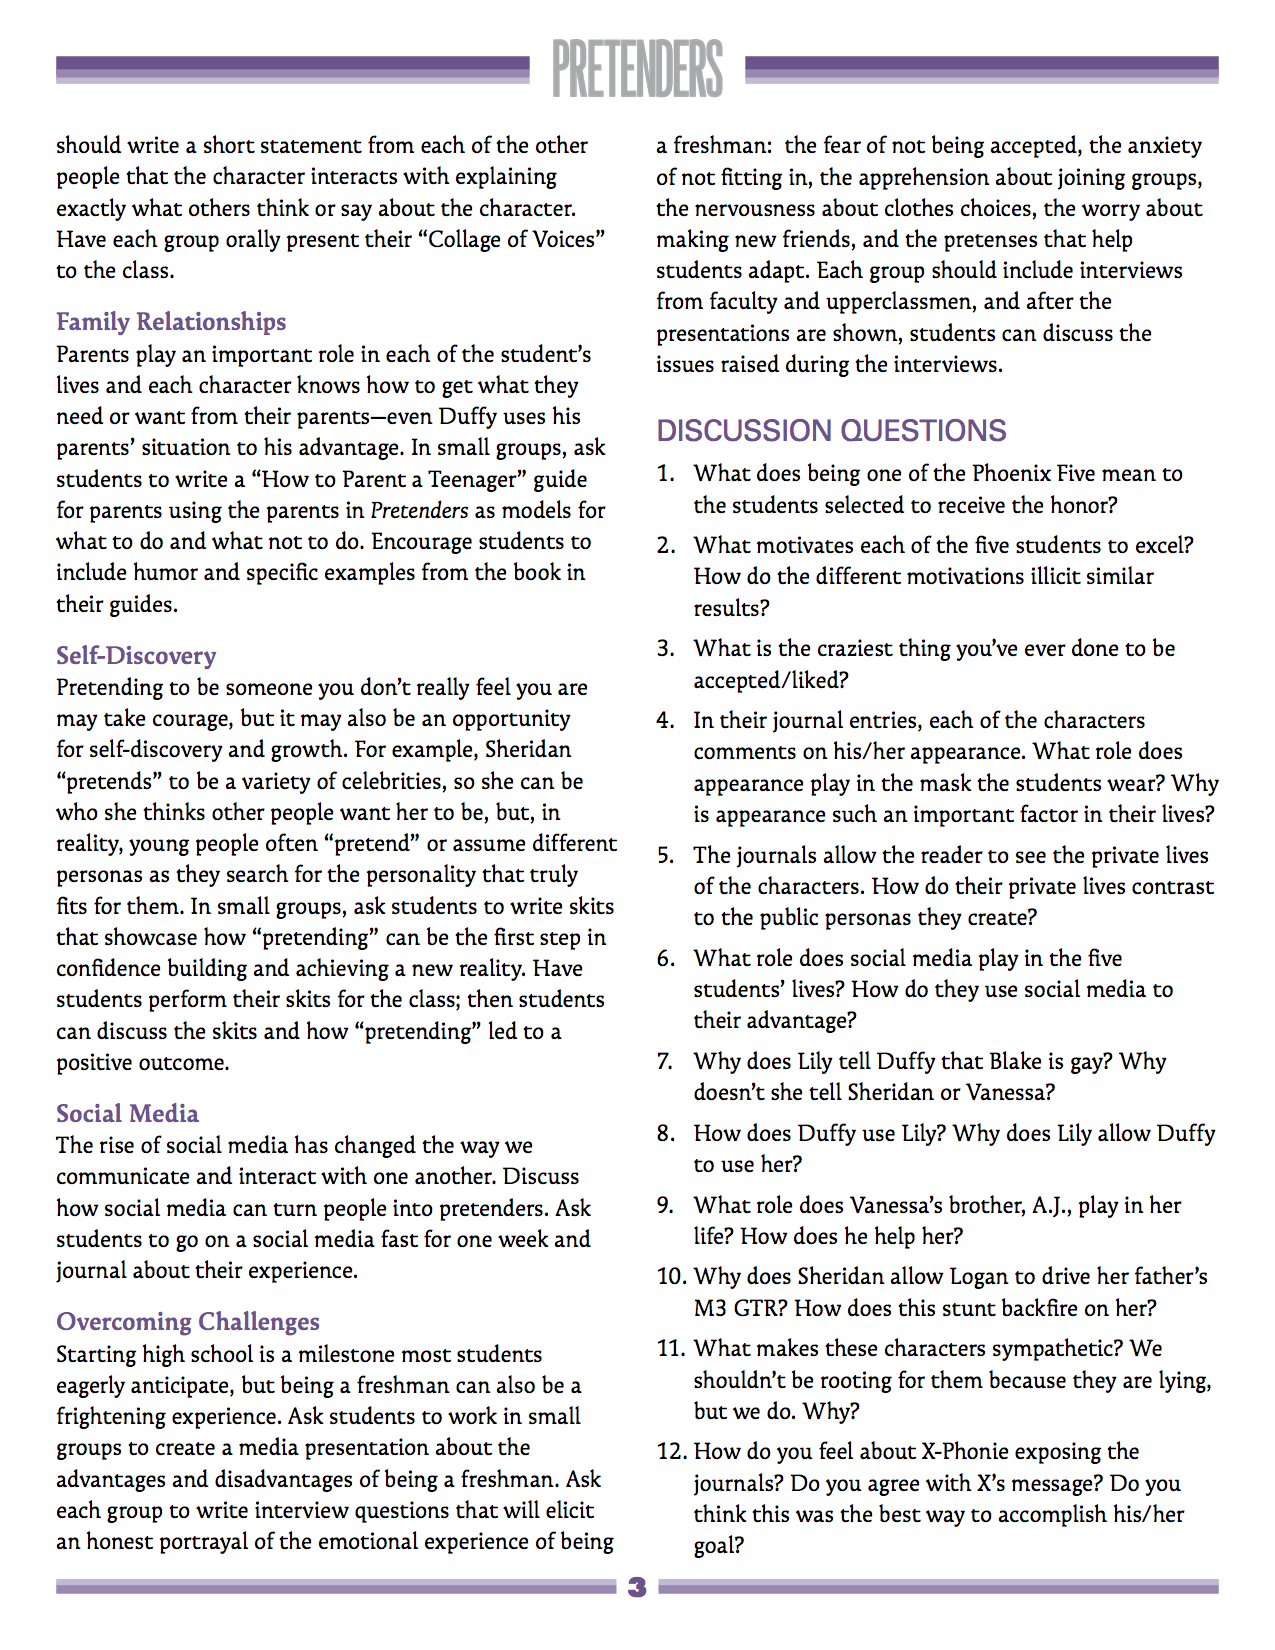 006 Who What Inspires You Yale Supplement Essay Educatorsguide Pretenders Tips Example College Confidential For University Questions Amazing Prepscholar Guide Full